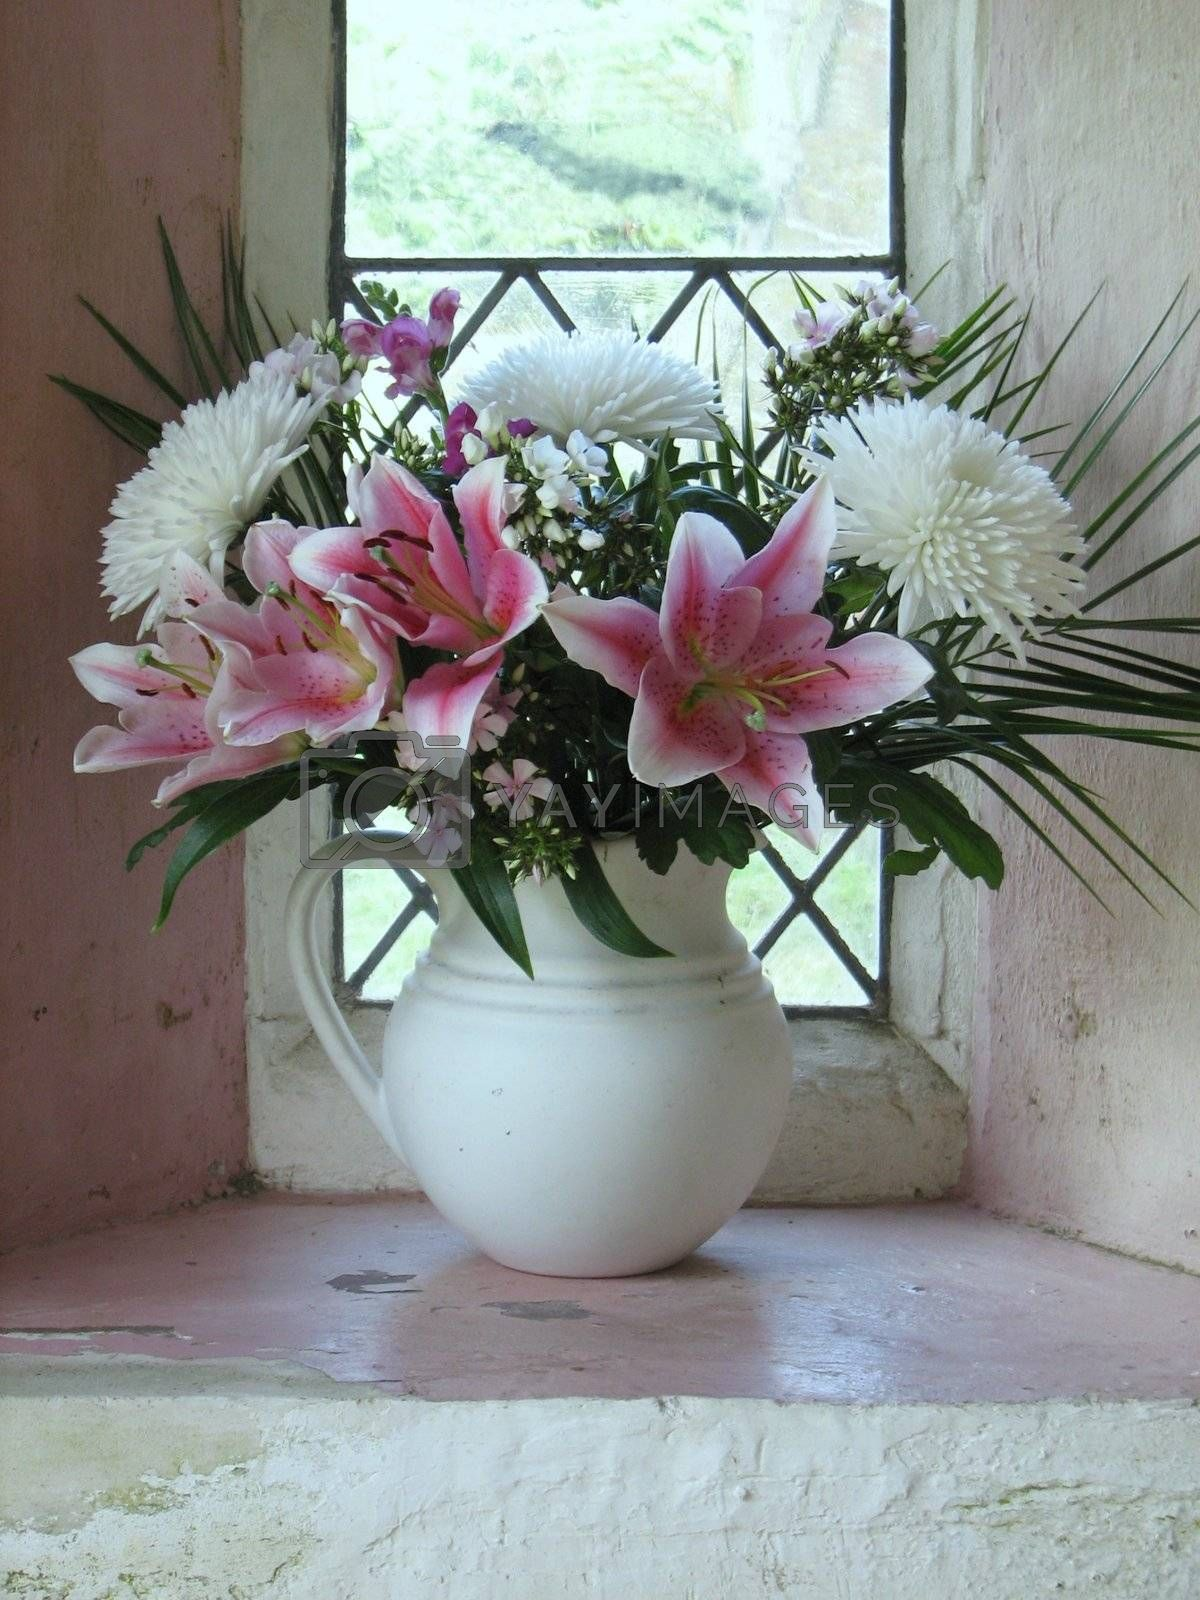 bunch of pink and white flowers standing in a window